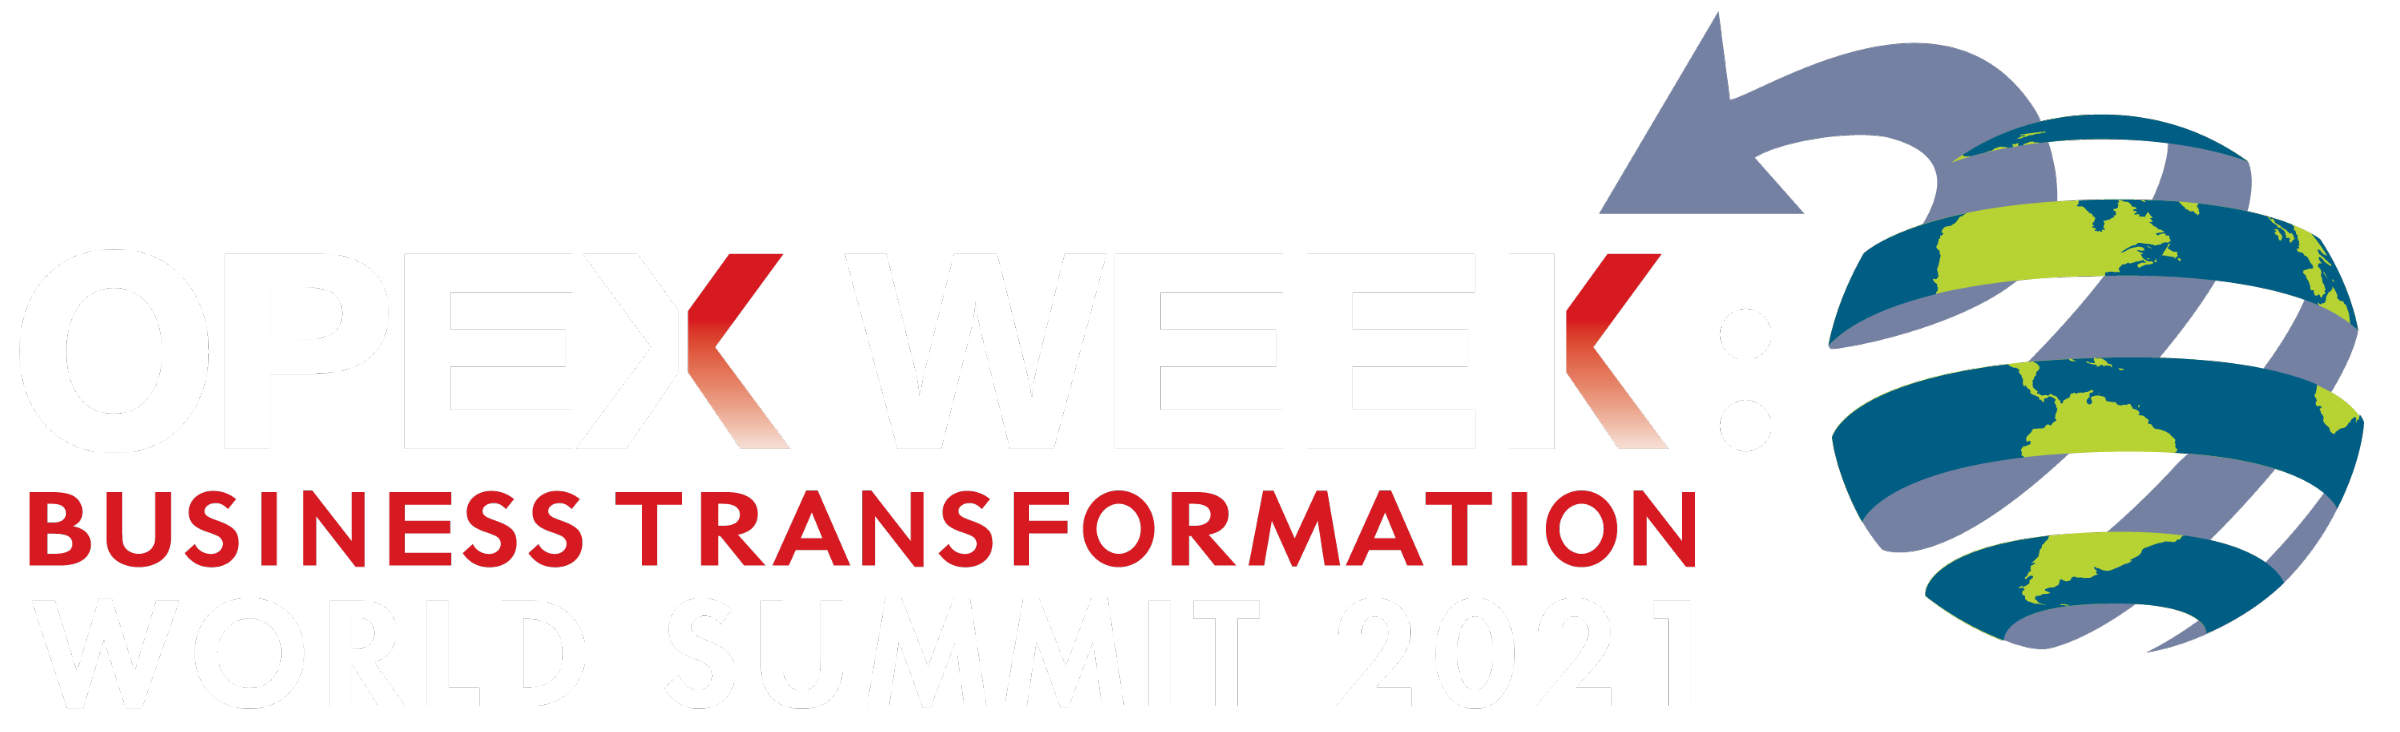 OPEX Week: Business Transformation World Summit 2021